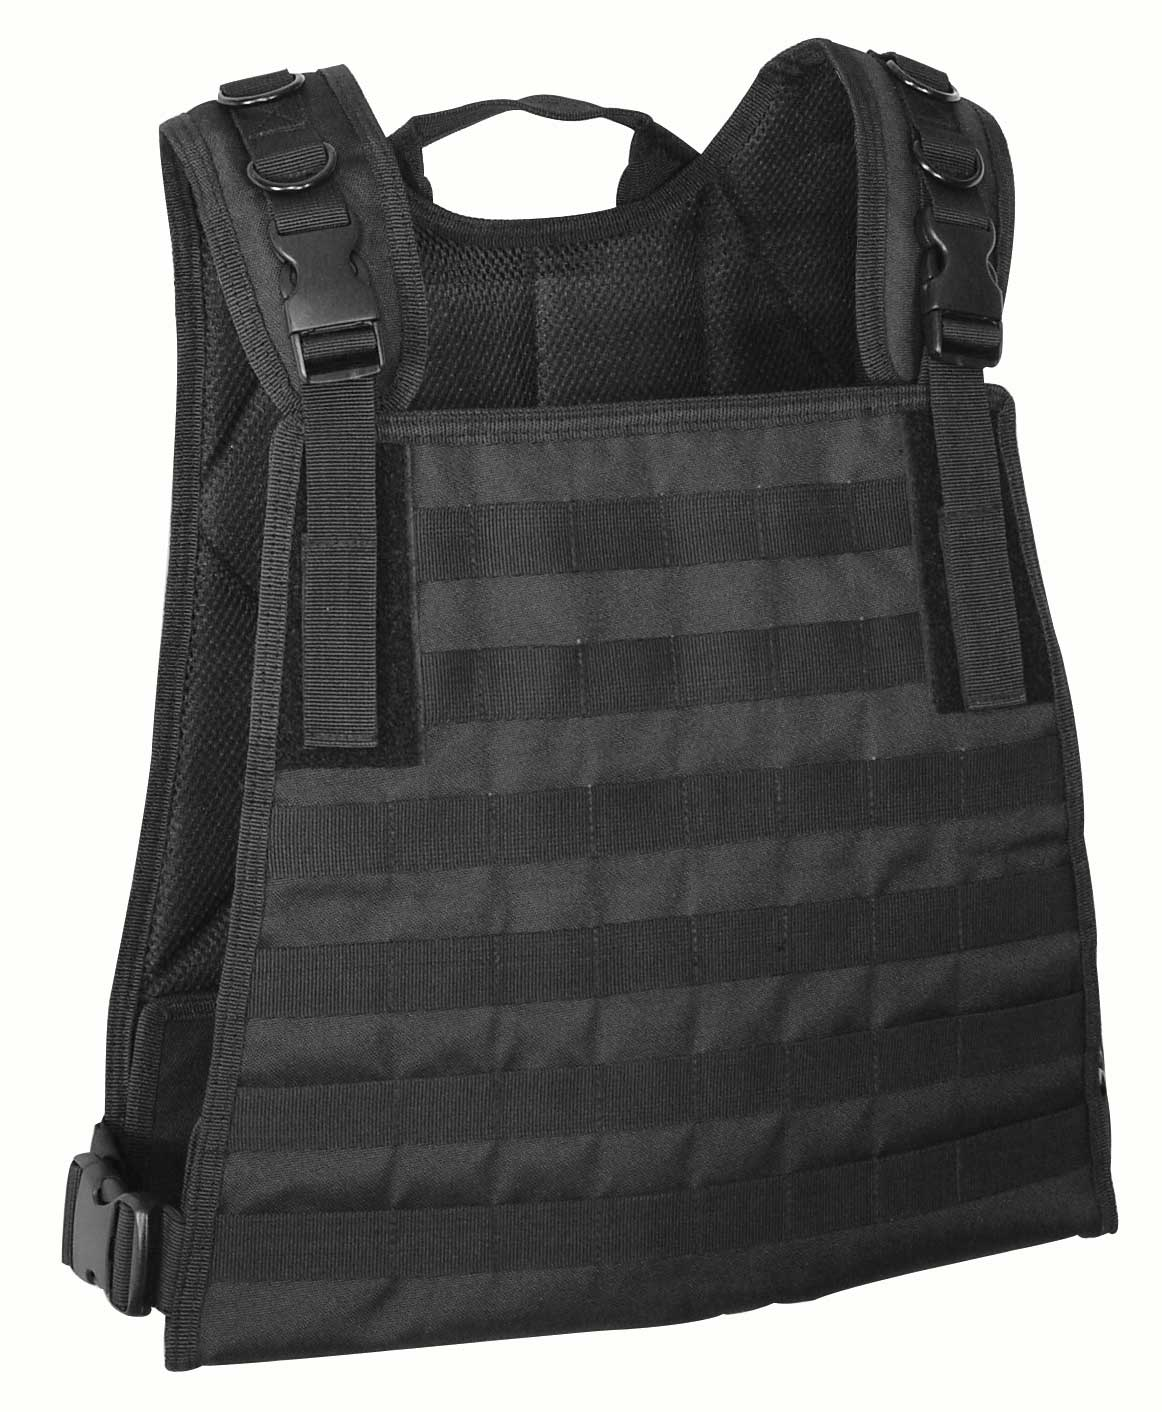 I.C.E. High Mobility Plate Carrier